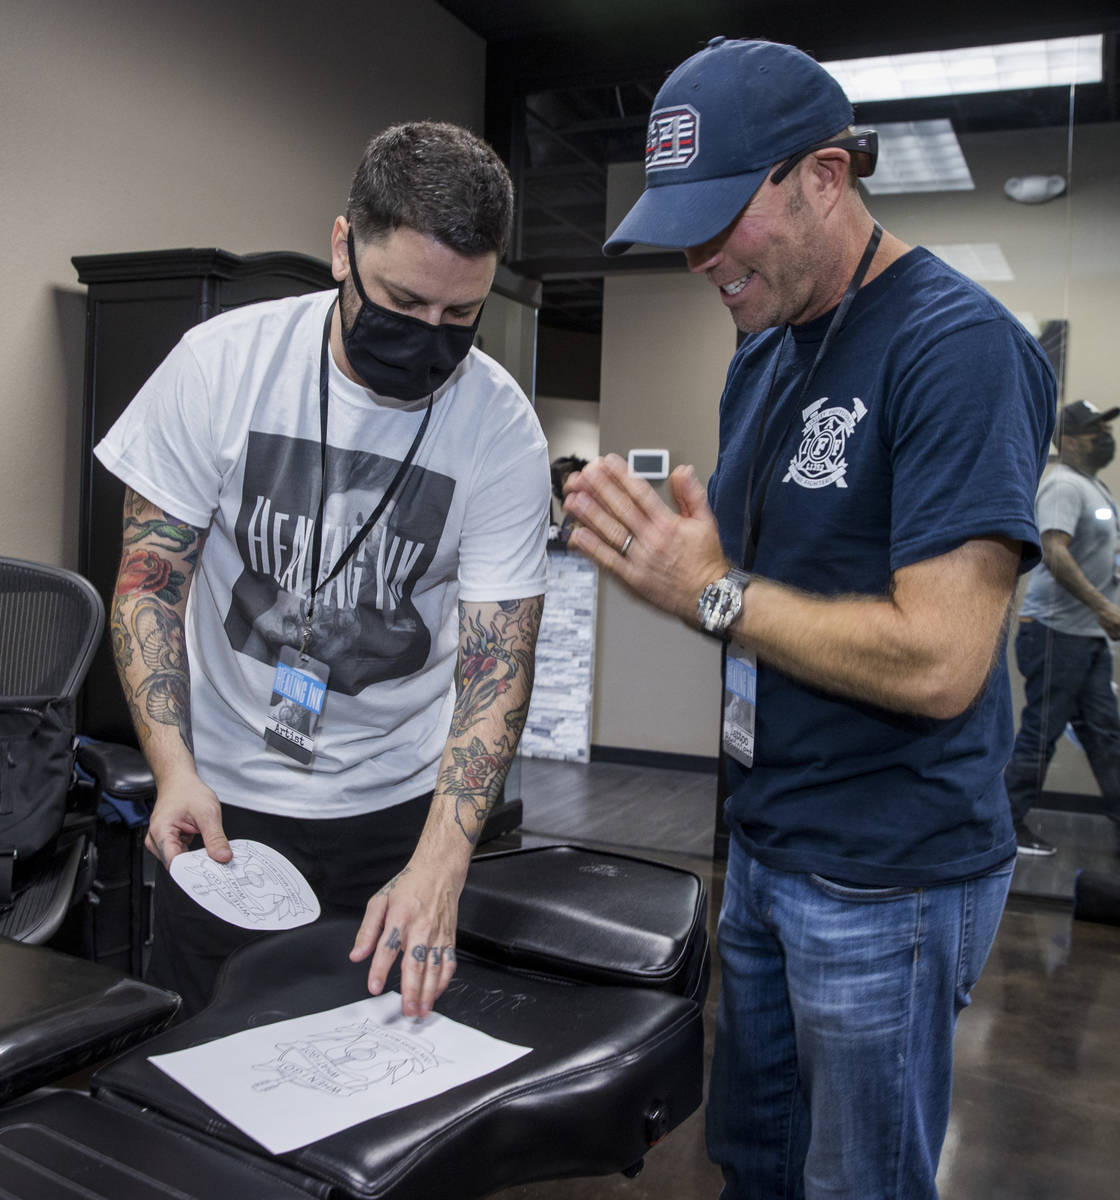 Tattoo artist Jim Sylvia, left, shows a sketch to Dean McAuley as Route 91 shooting survivors a ...